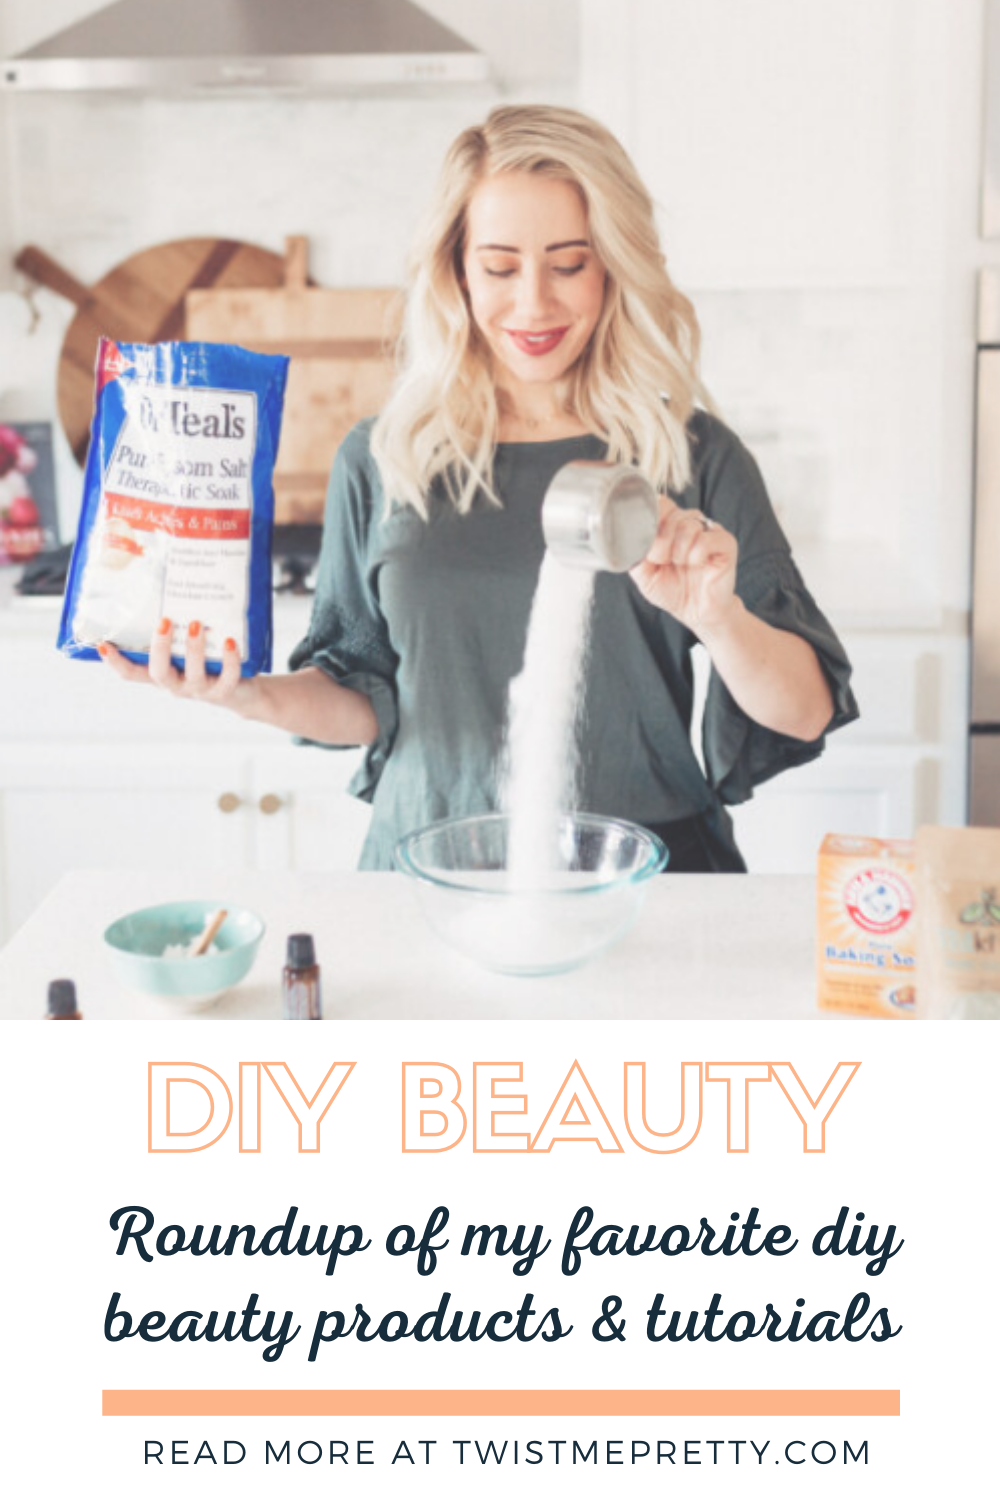 Diy Beauty. Roundup of my favorite diy beauty products and tutorials. www.twistmepretty.com